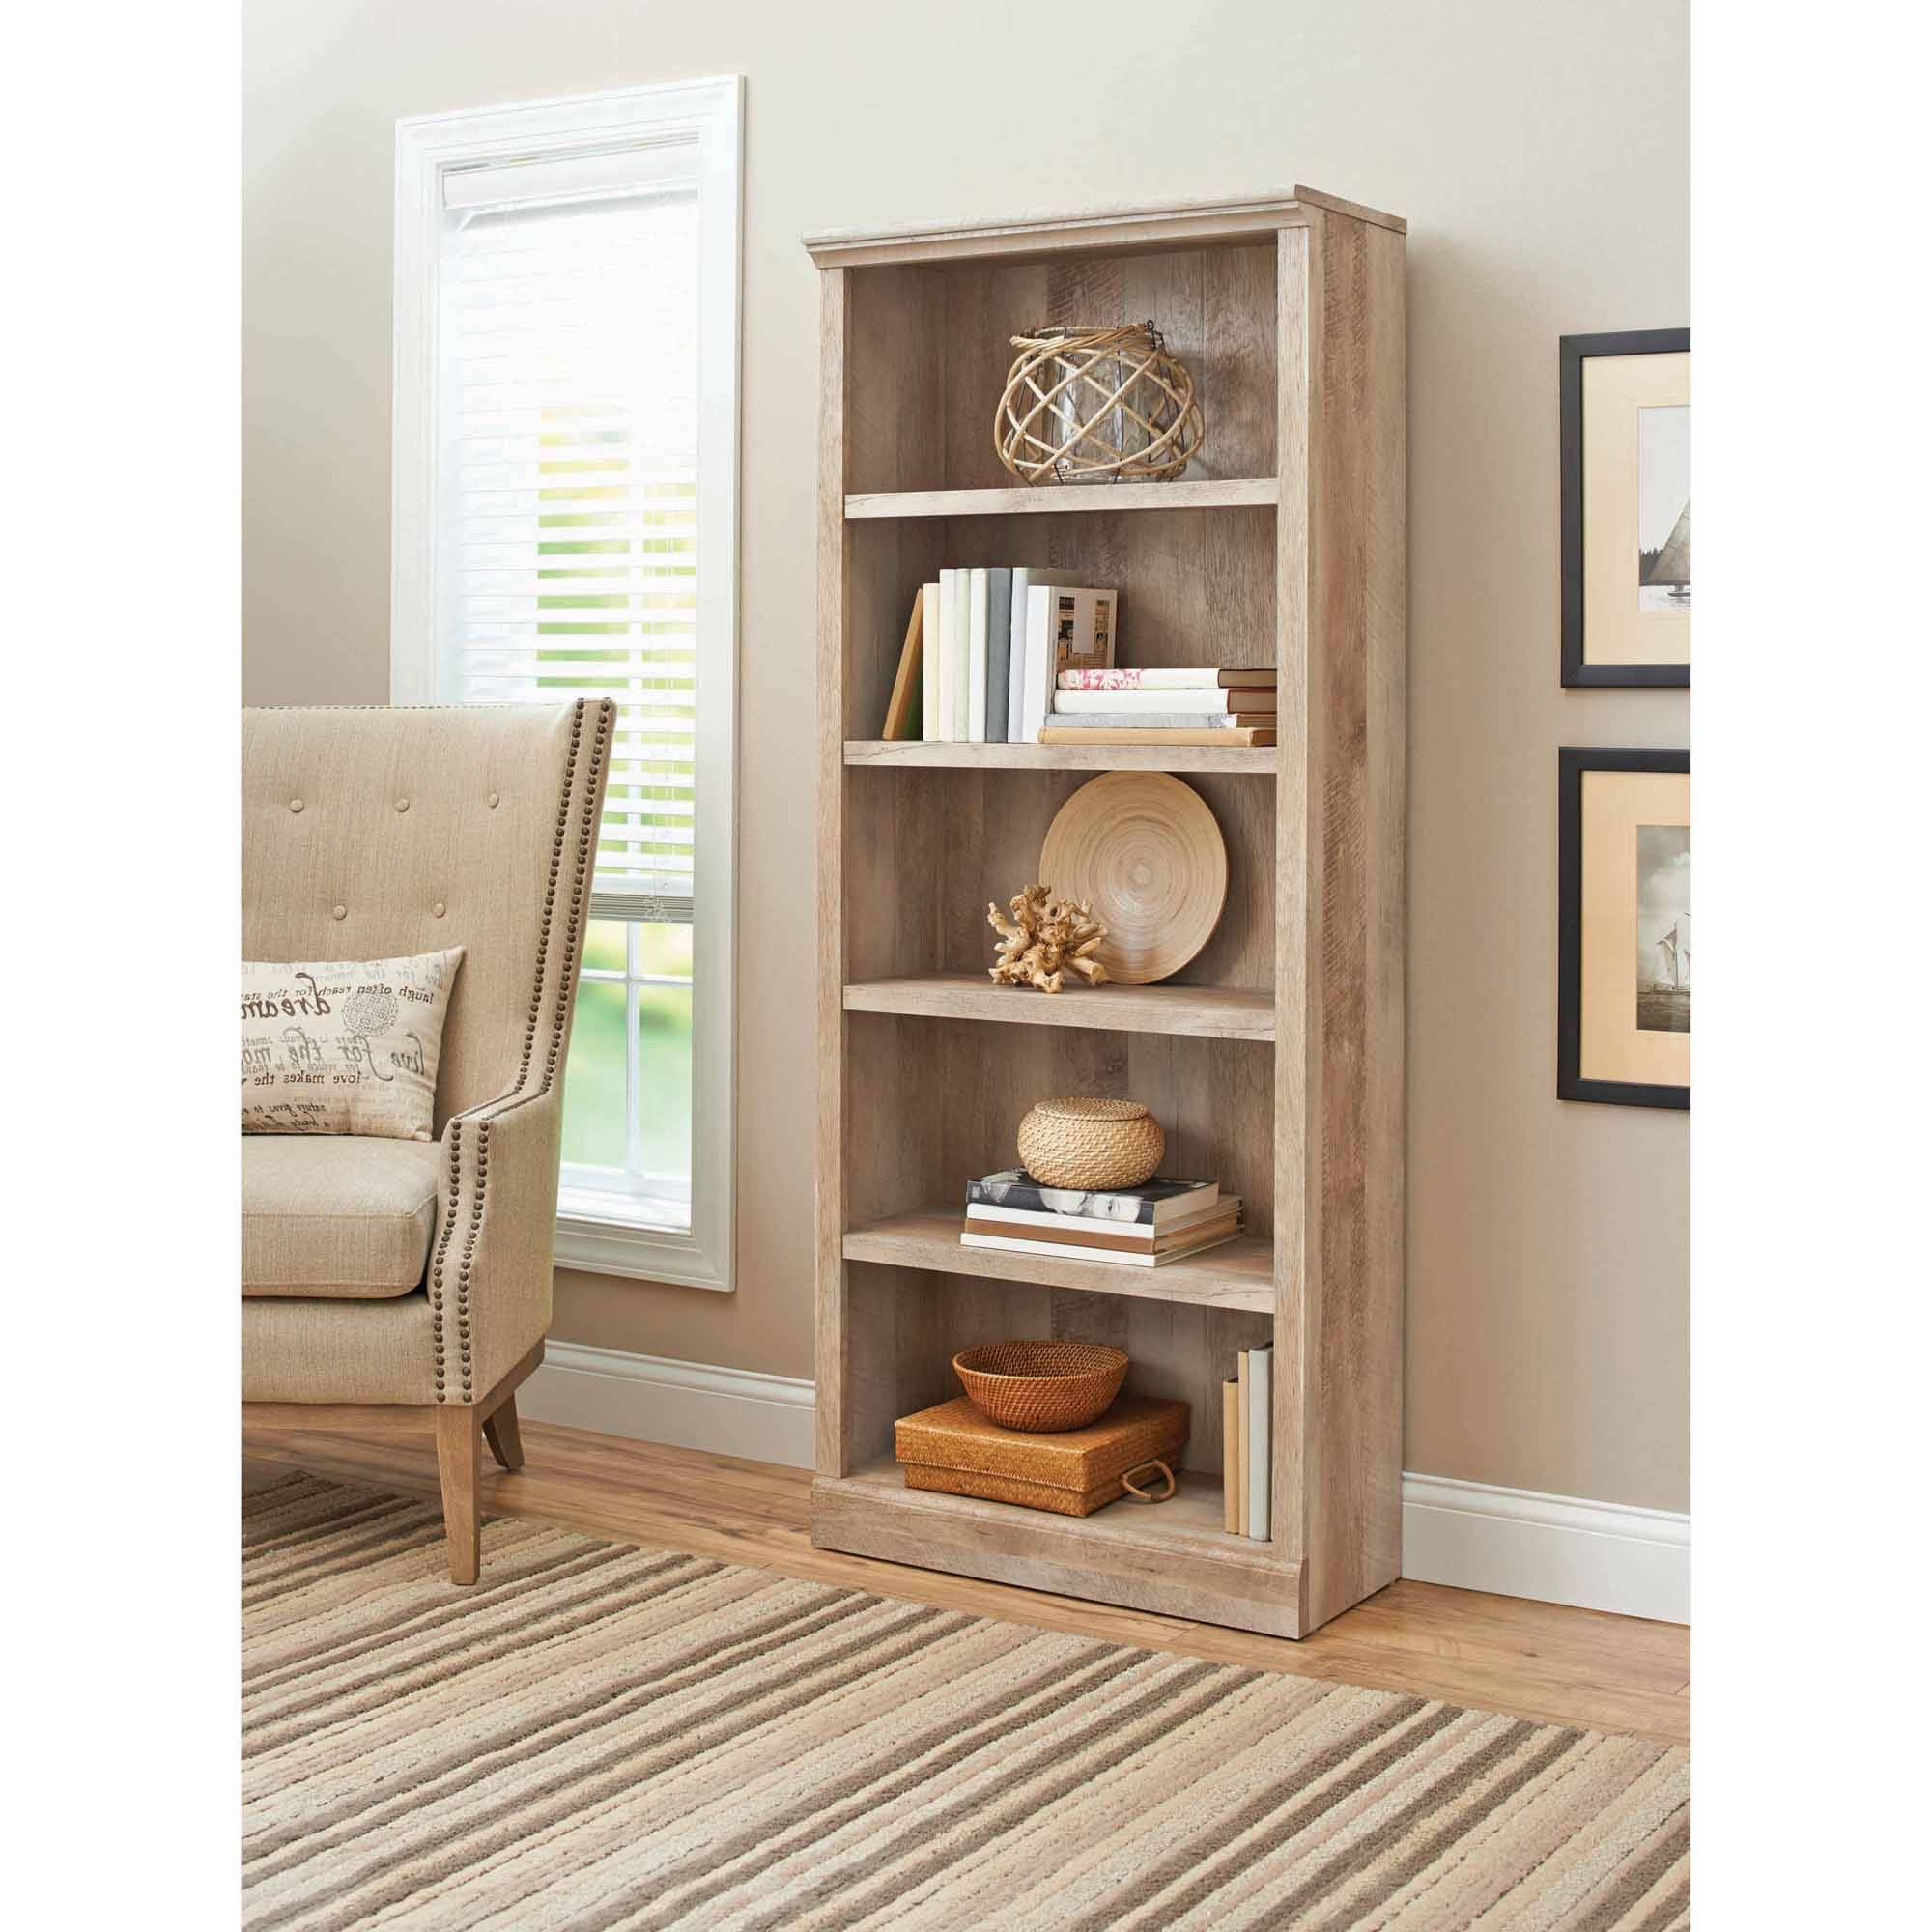 Black Bookcases Walmart For Recent Better Homes And Gardens Crossmill 5 Shelf Bookcase, Multiple (View 15 of 15)